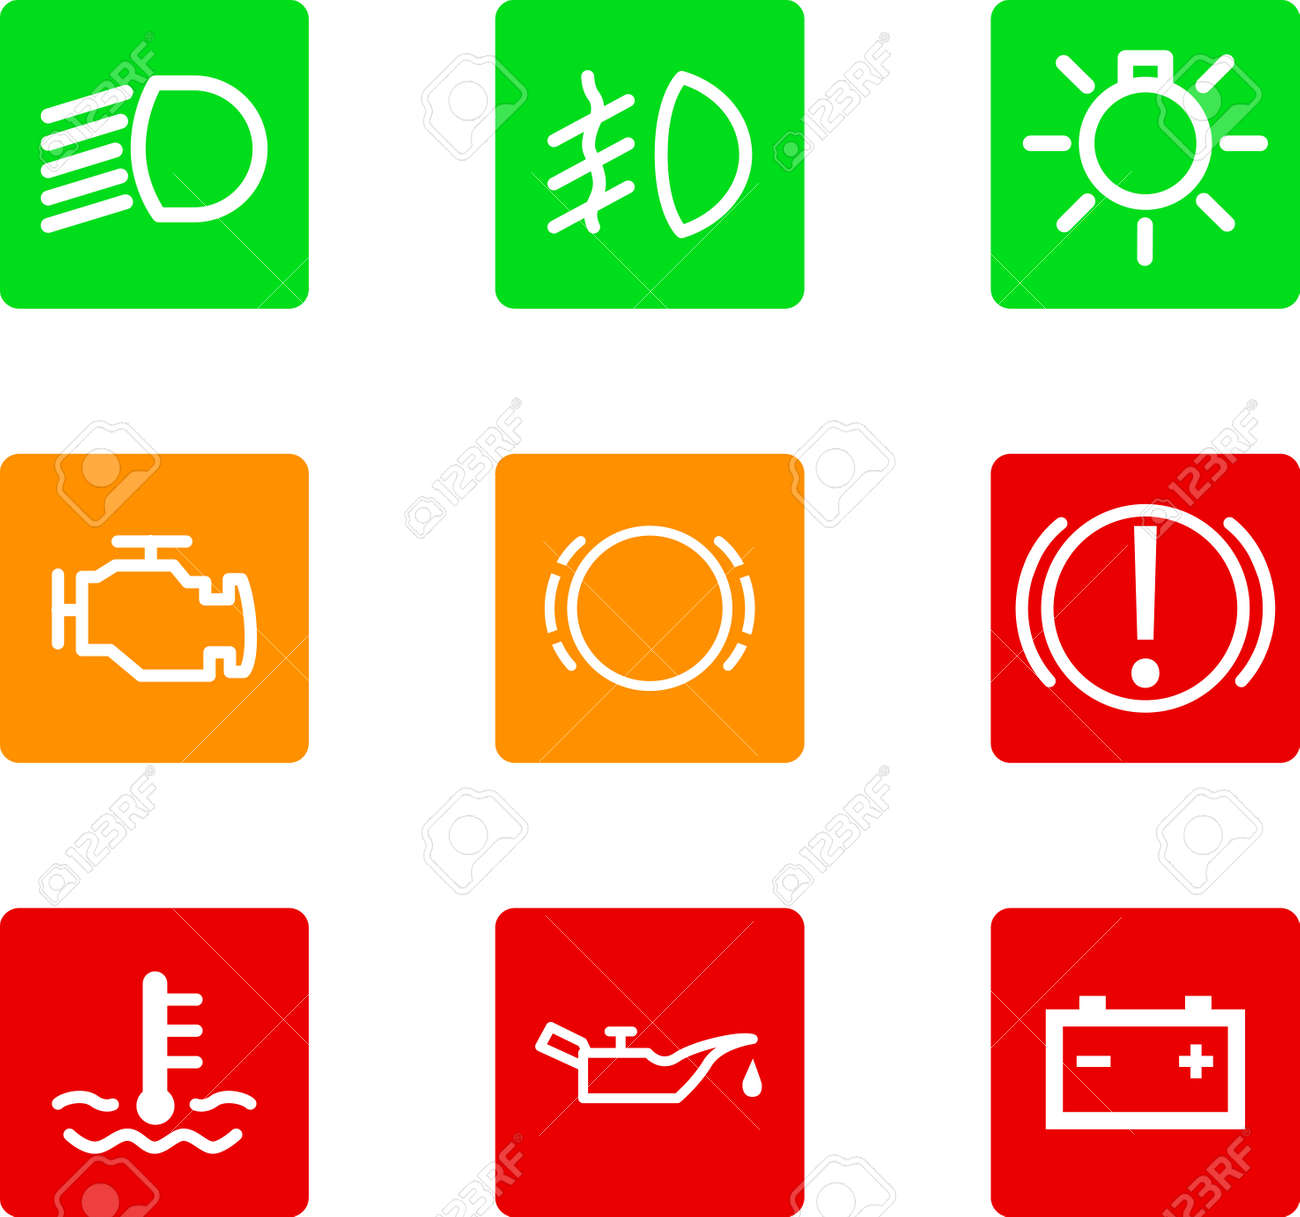 Illustration Of Nine Car Dashboard Icons Royalty Free Cliparts - Car image sign of dashboardcar dashboard icons stock images royaltyfree imagesvectors